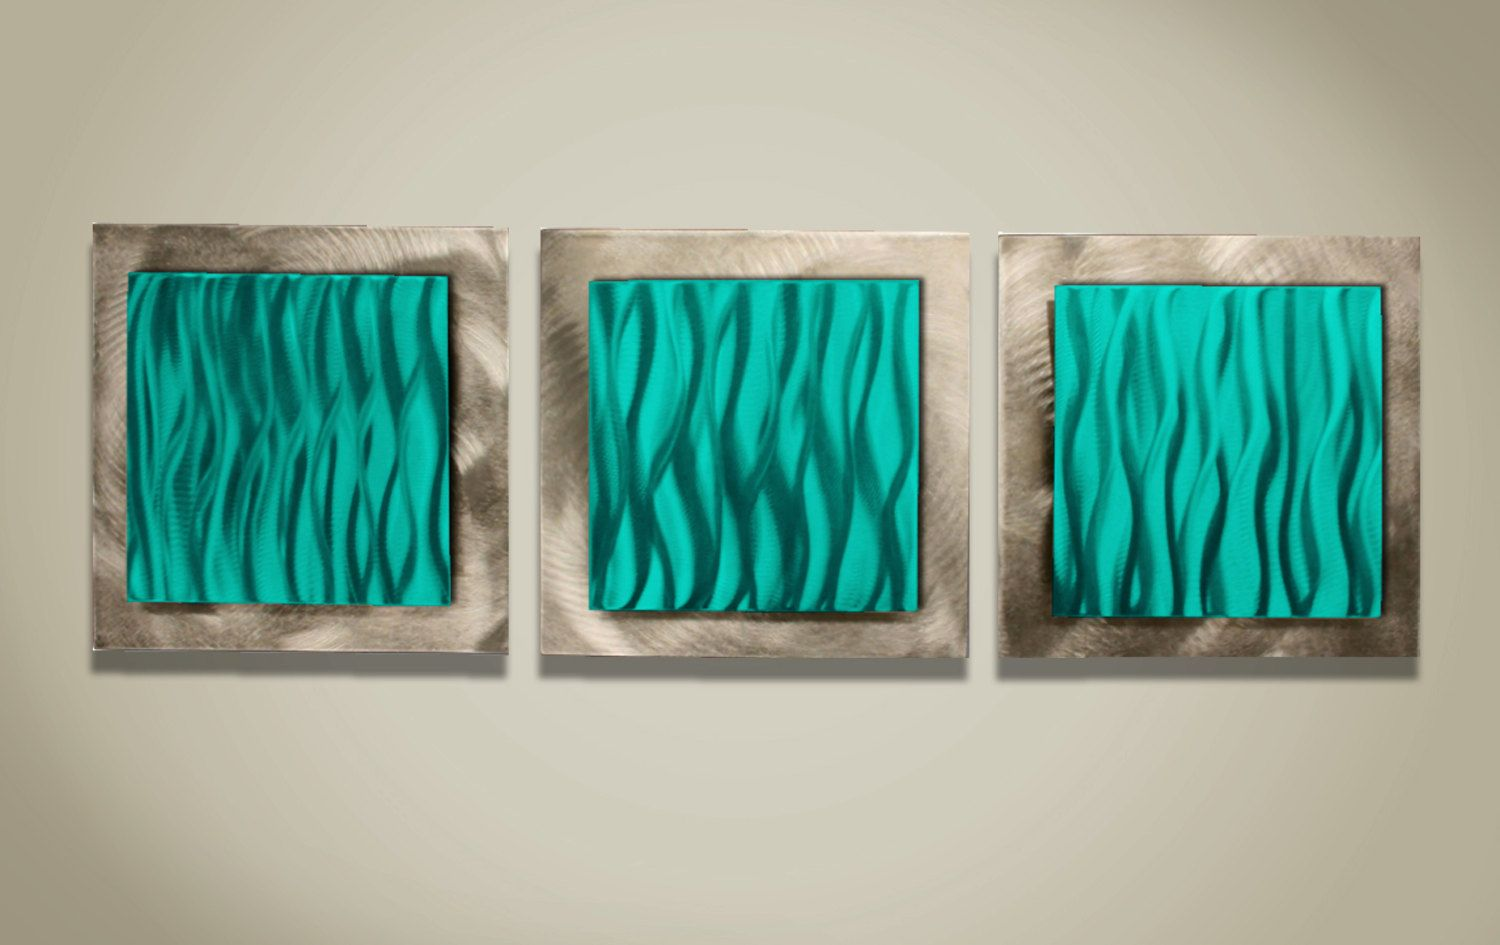 Turquoise wall art uturquoise essenceu x in by moderncrowd